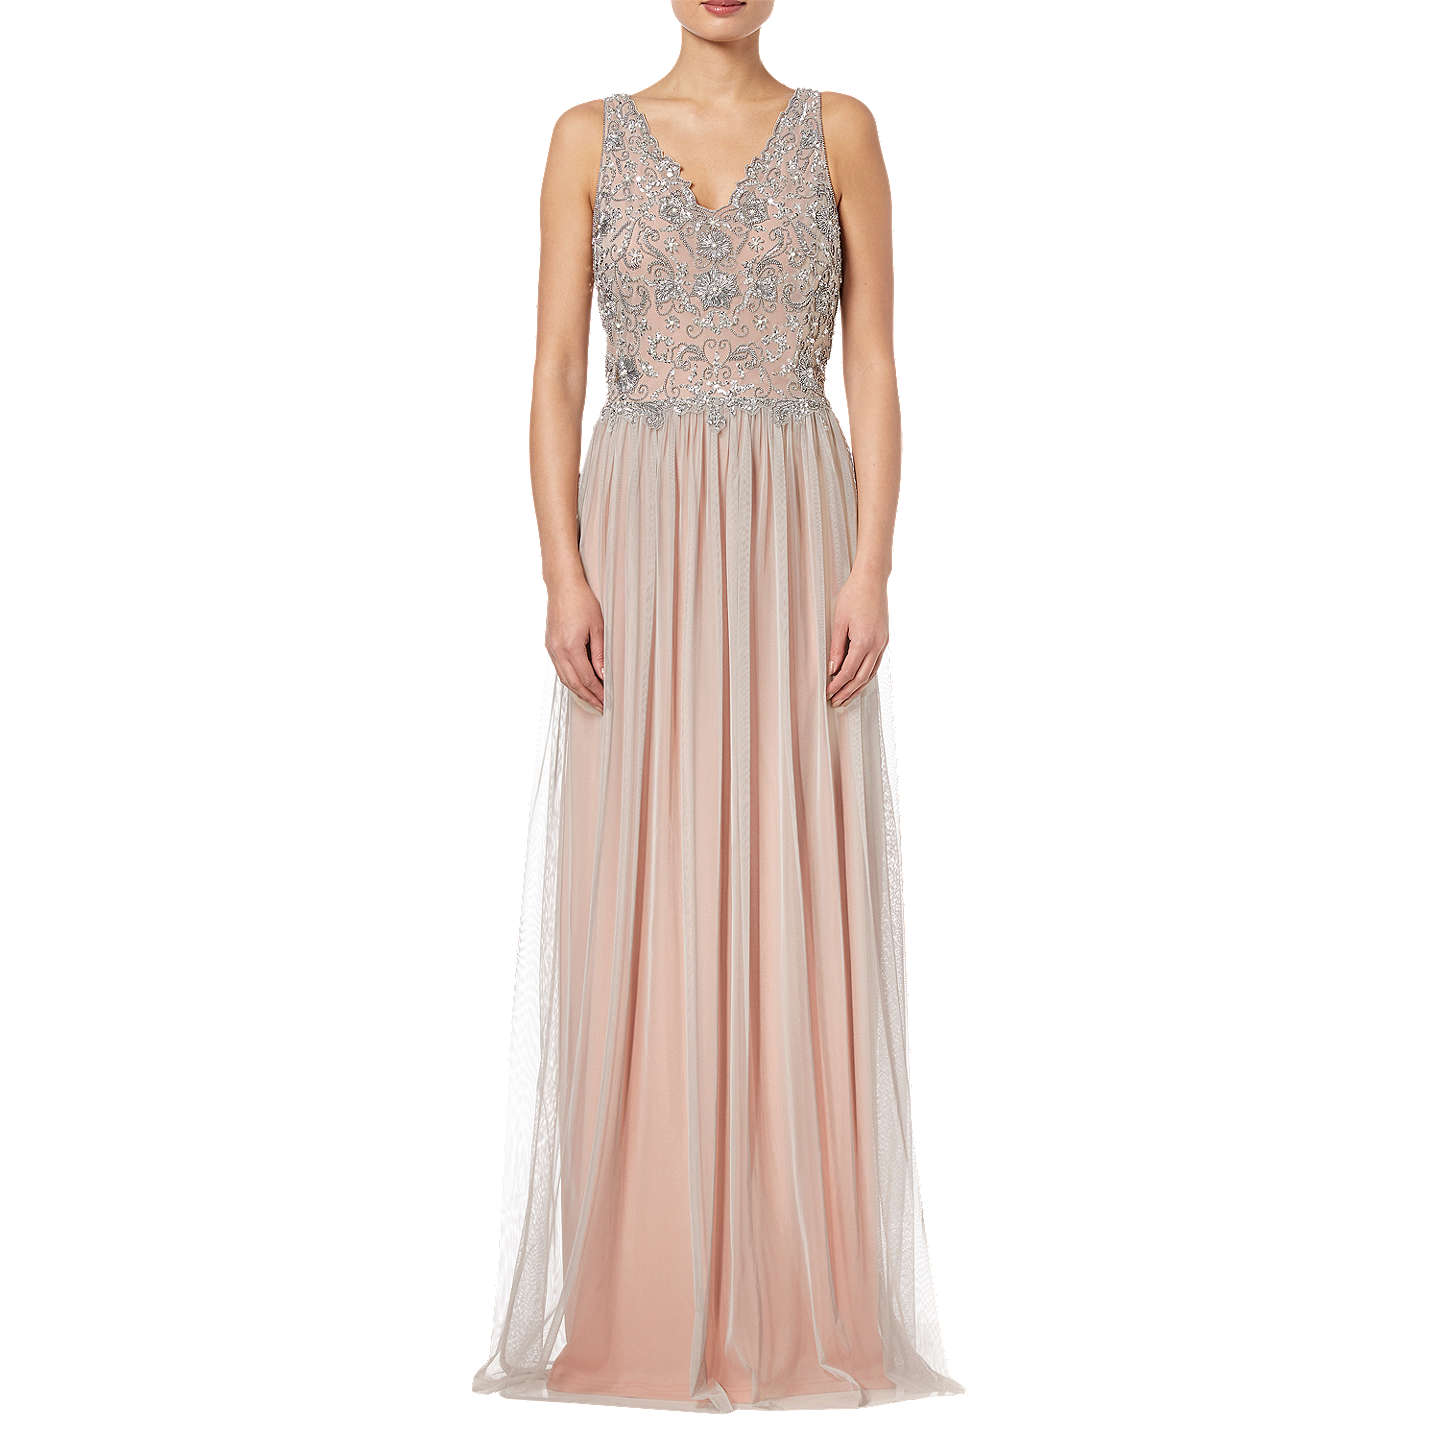 Adrianna Papell Wedding Gowns: Adrianna Papell Beaded Bridesmaid Dress,Silver/Nude At